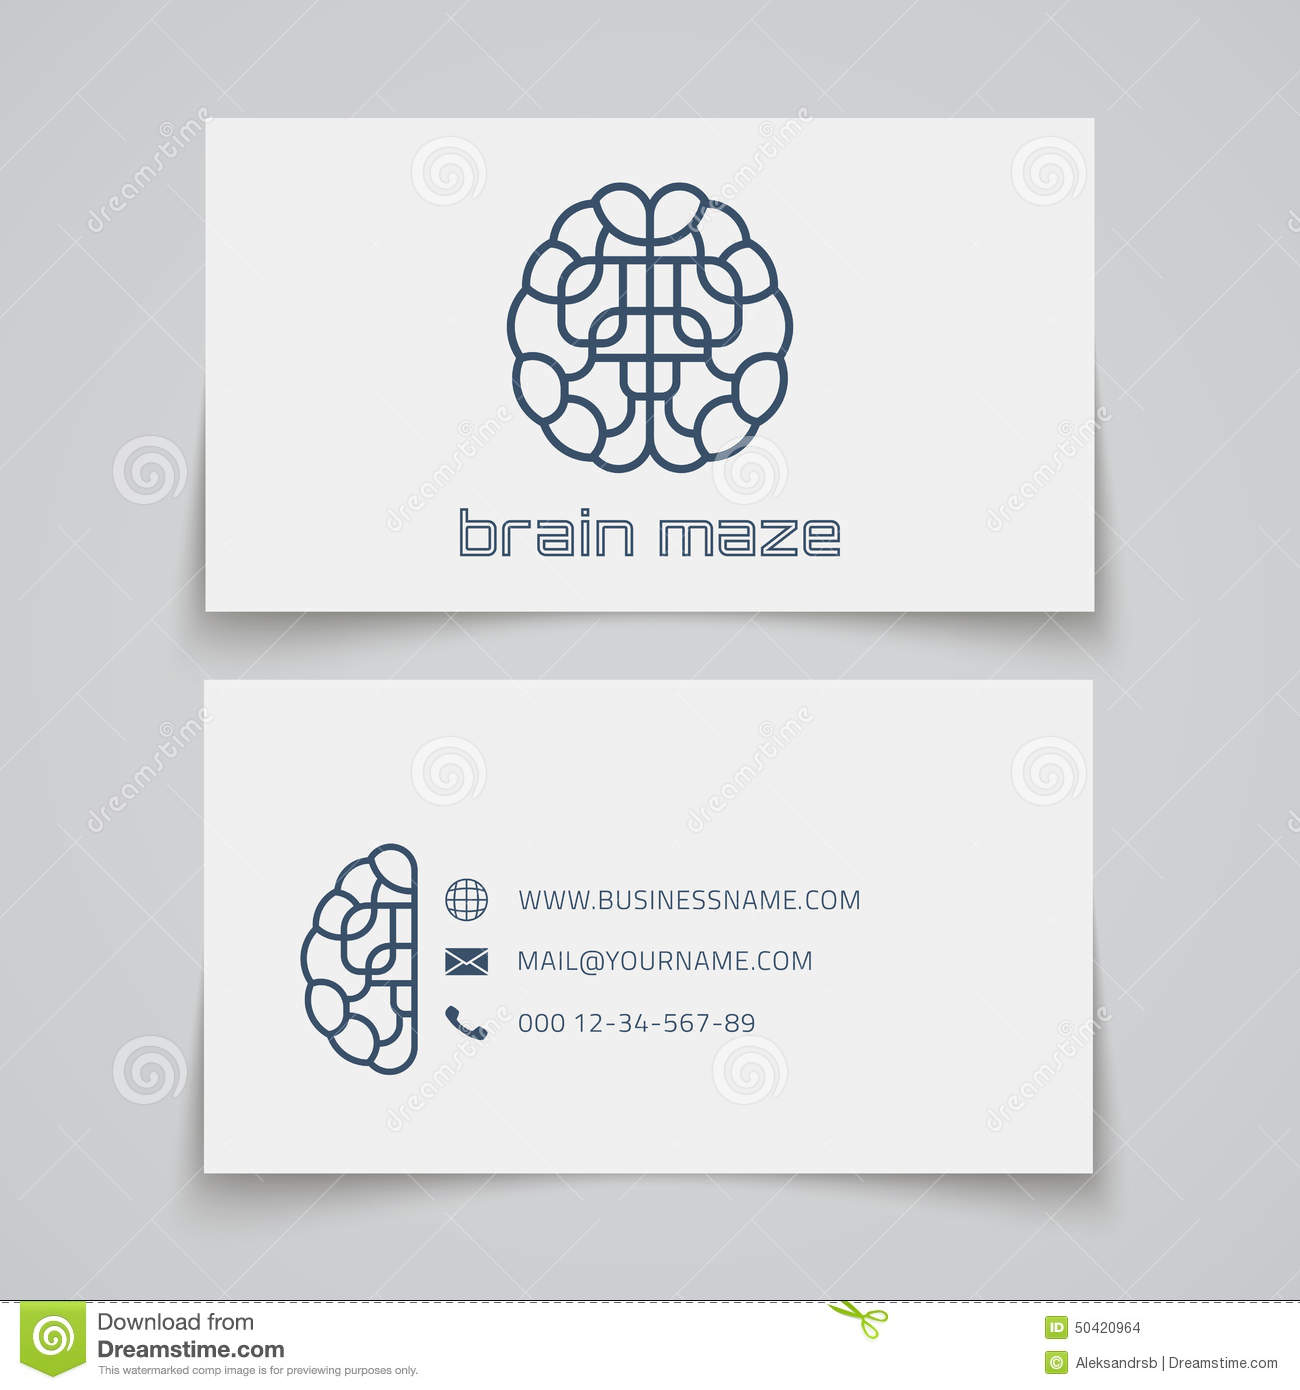 Business card template brain maze logo stock vector illustration business card template brain maze logo stock vector illustration of background letterhead 50420964 reheart Gallery